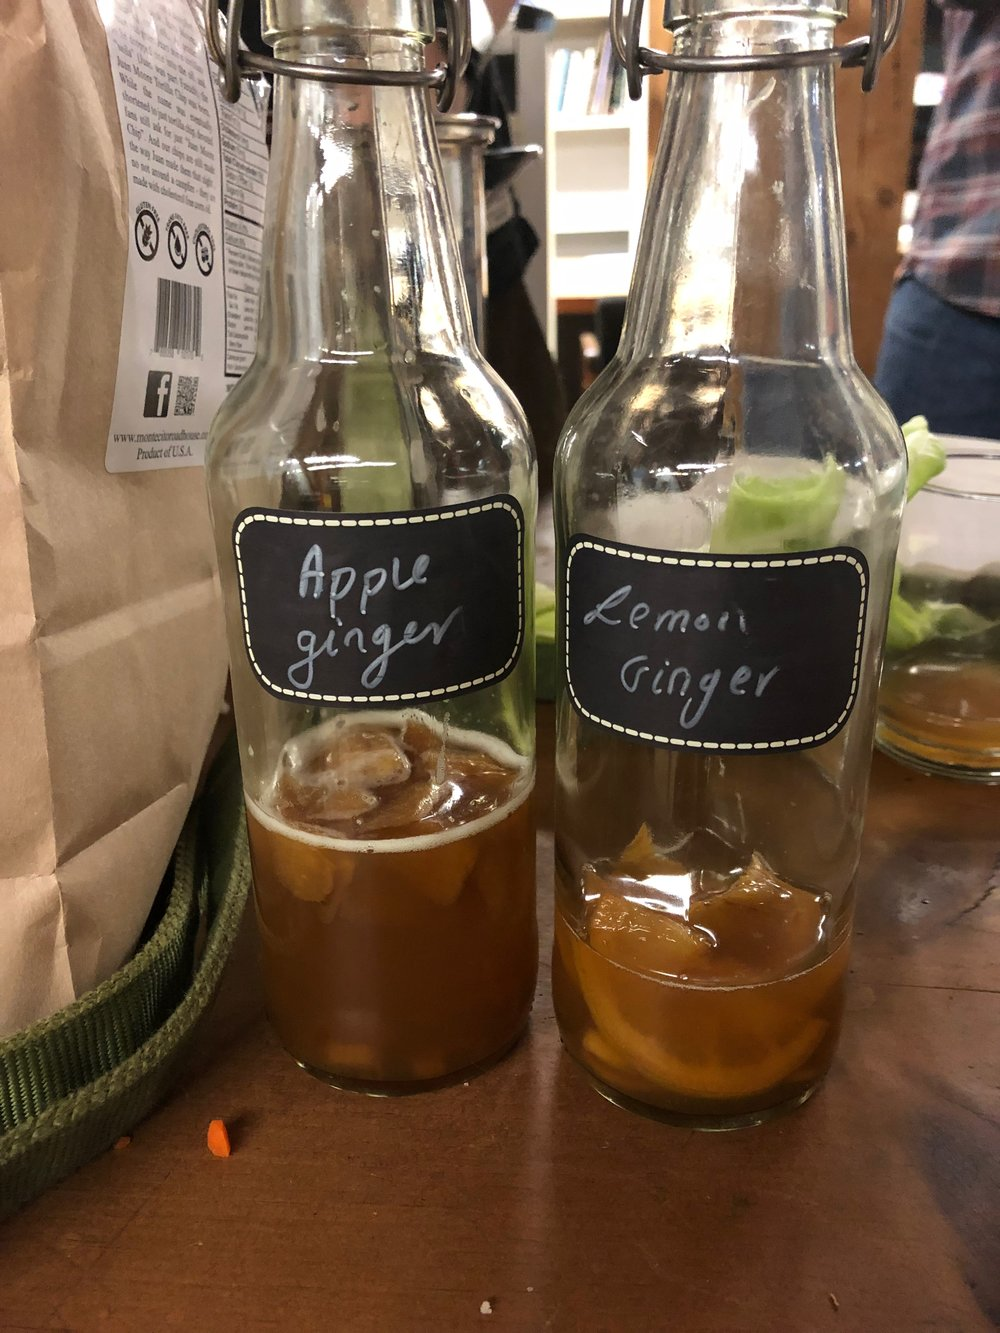 Bottles of homemade Kombucha Maria brought in for everyone to taste.